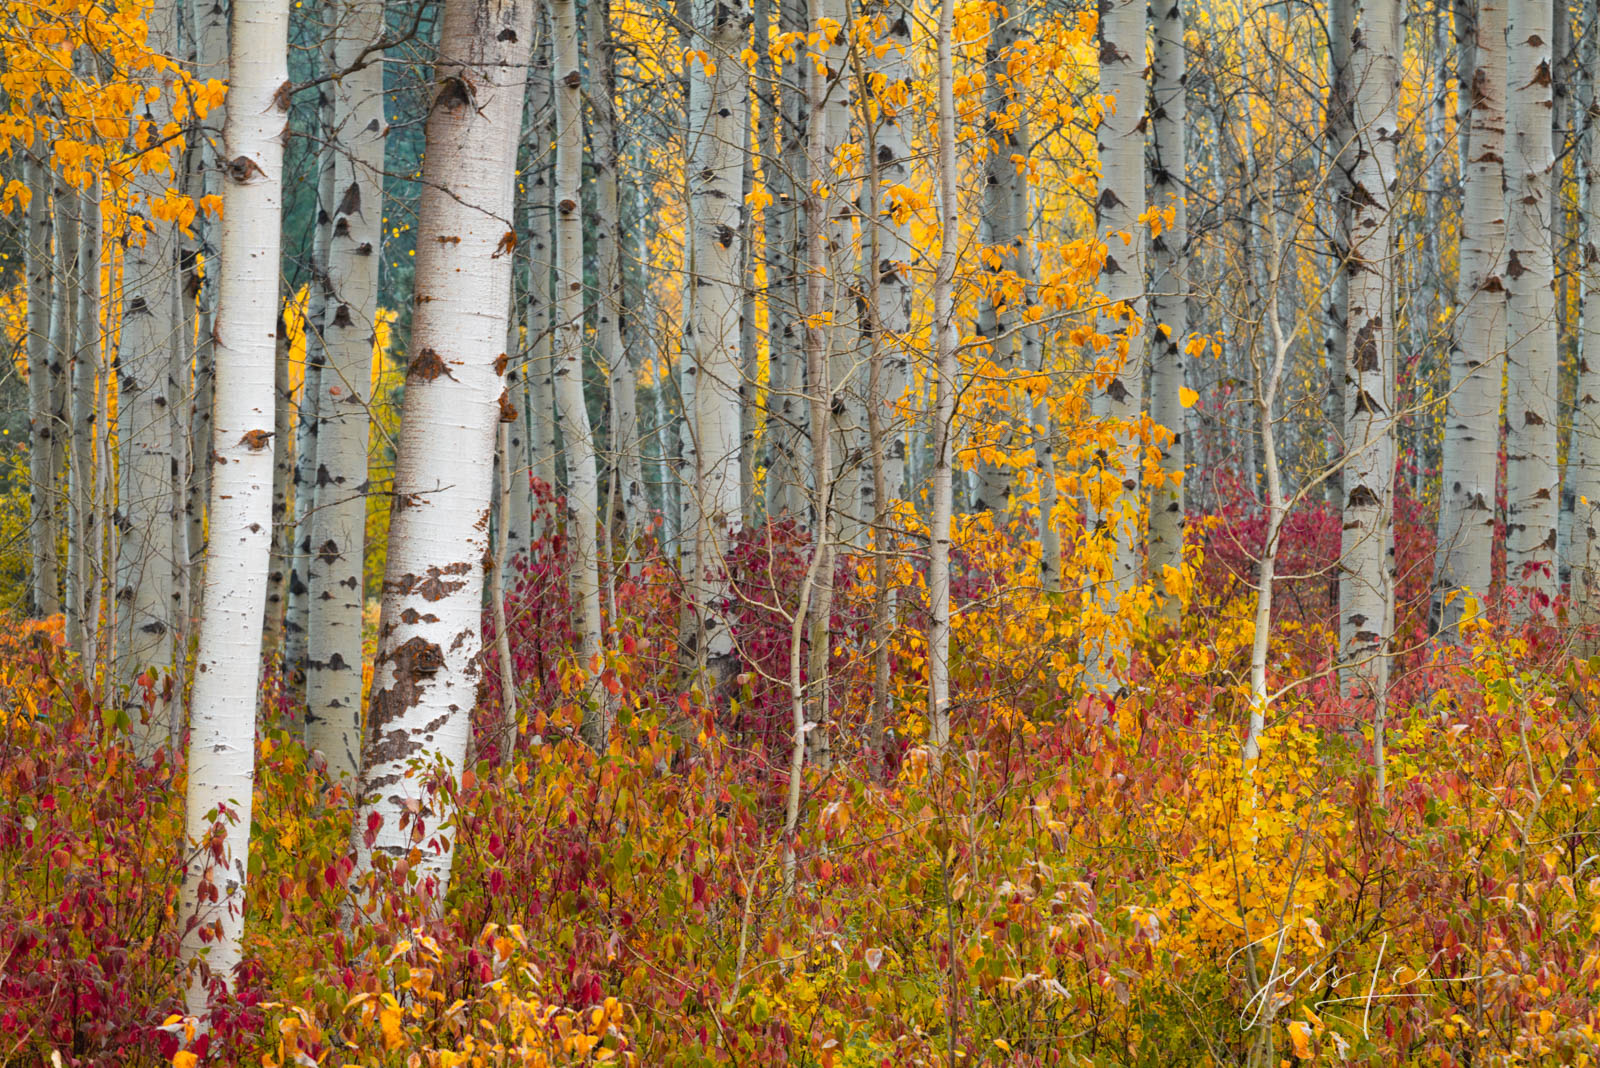 A limited edition fine art photographic print of 50 archival Museum Quality artworks of this beautiful group of Birch trees....